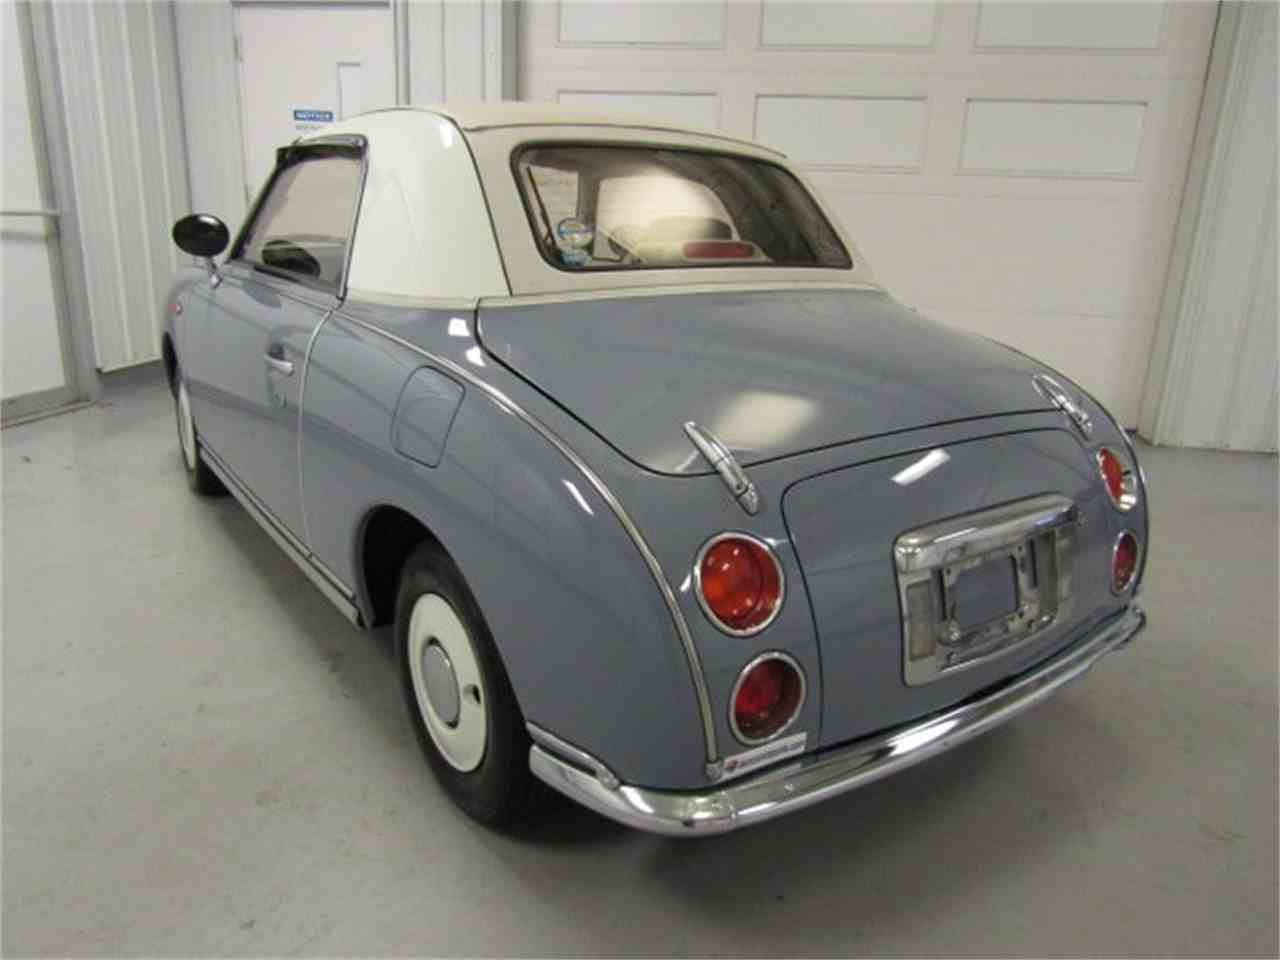 Large Picture of '91 Nissan Figaro located in Virginia Offered by Duncan Imports & Classic Cars - MAY4